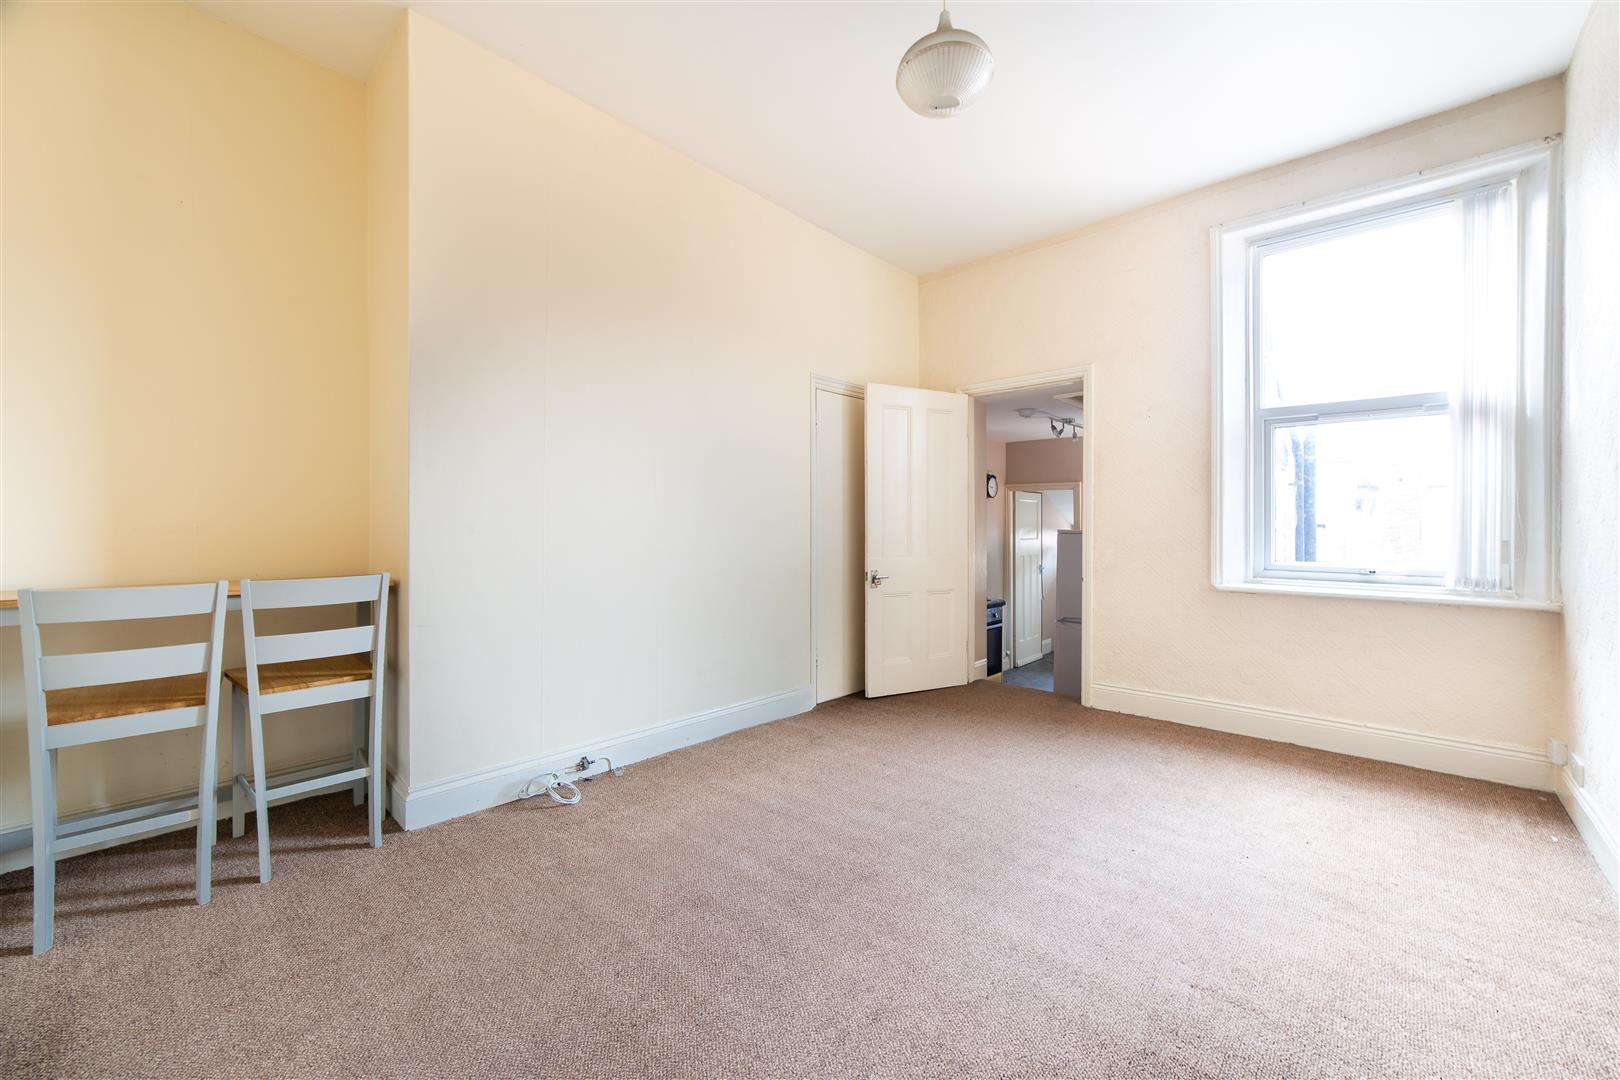 3 bed flat to rent in Newcastle Upon Tyne, NE6 5DX  - Property Image 1